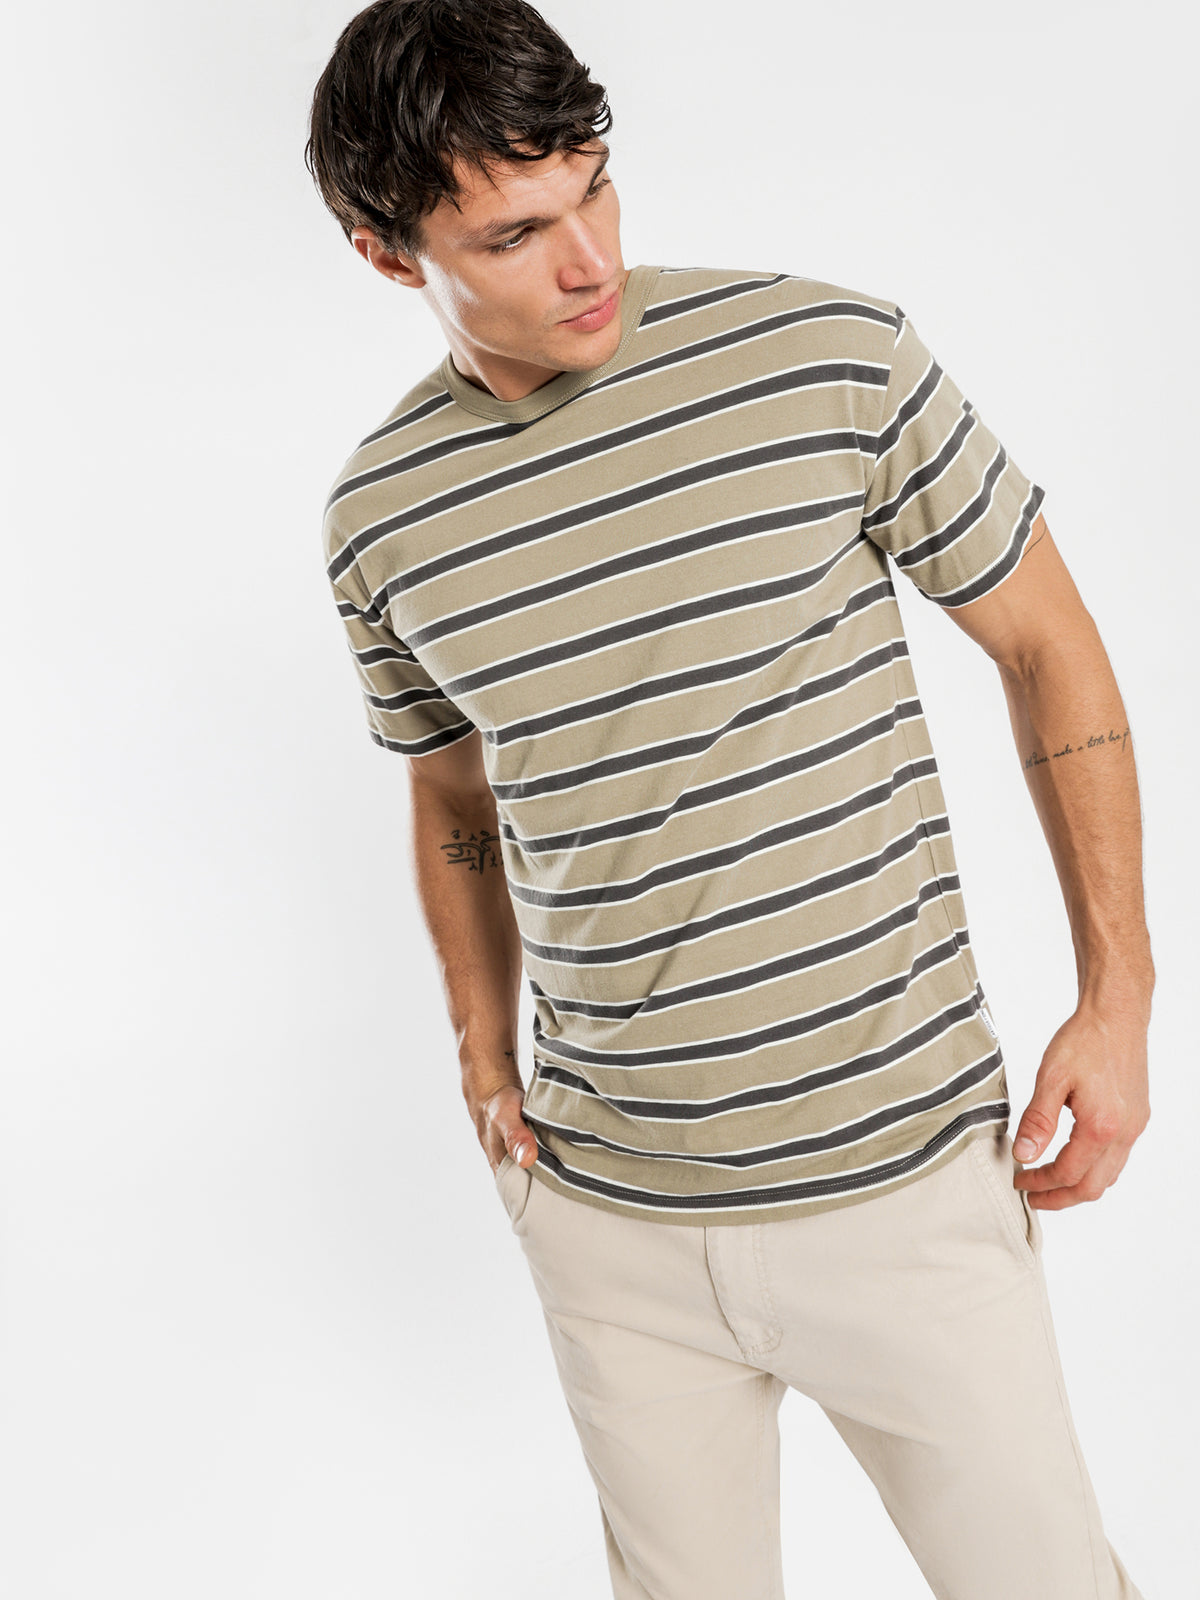 Southport T-Shirt in Olive & Charcoal Stripe